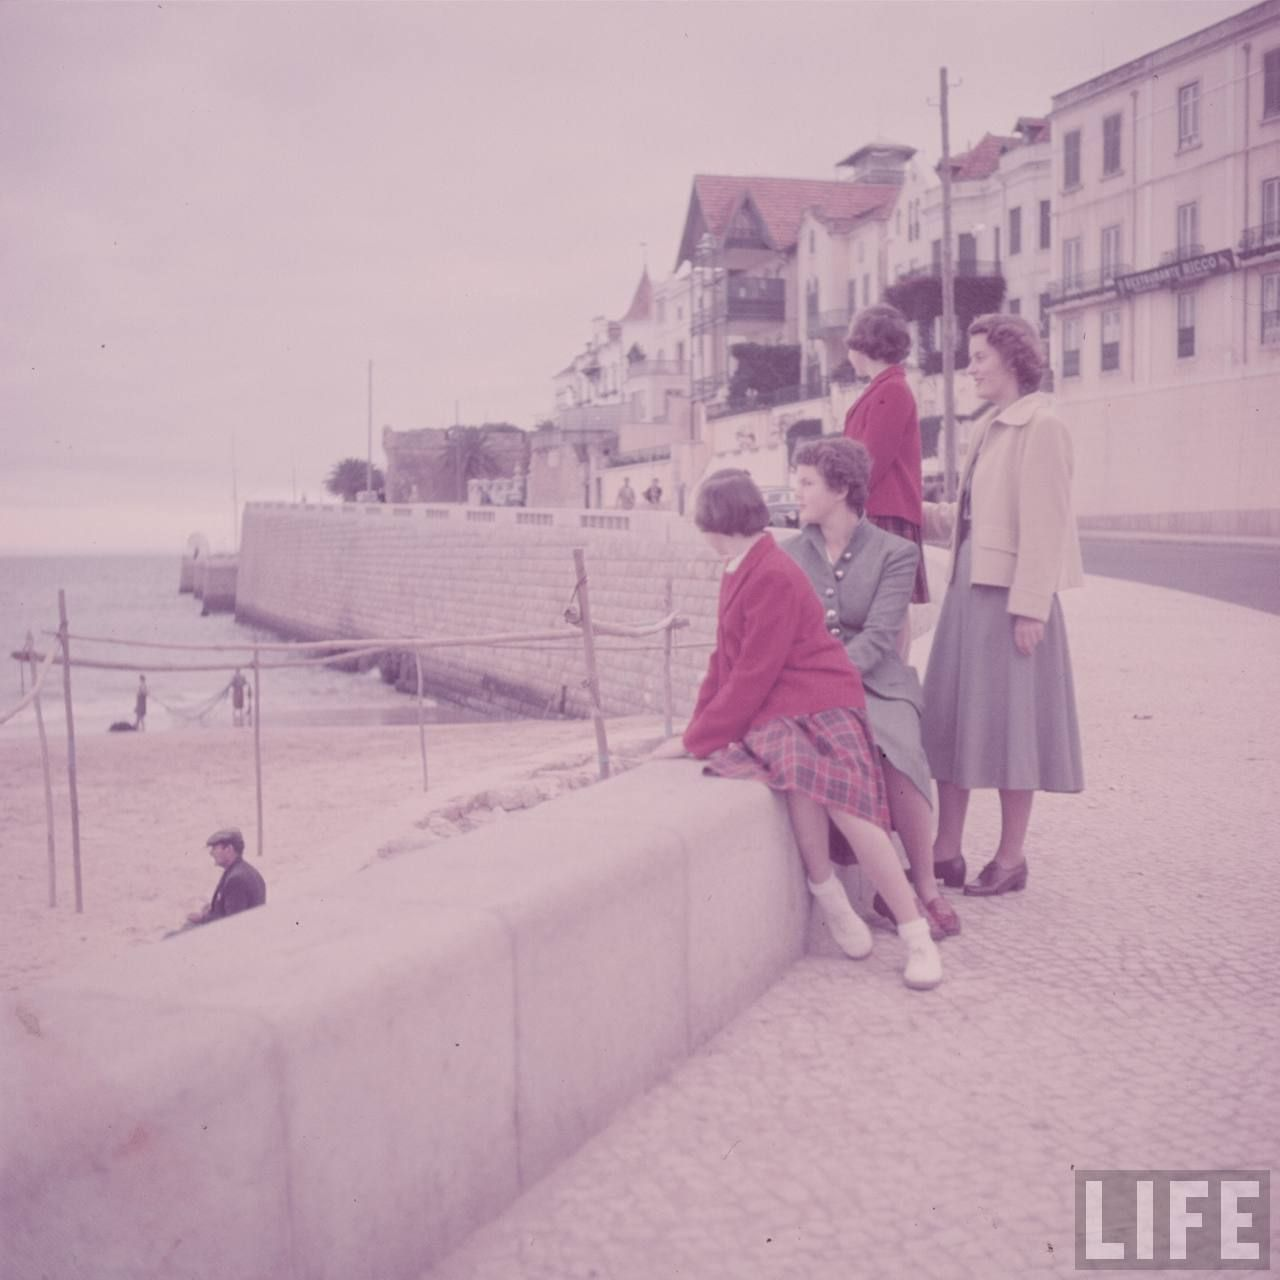 Cascais, Portugal taken by Gordon Parks